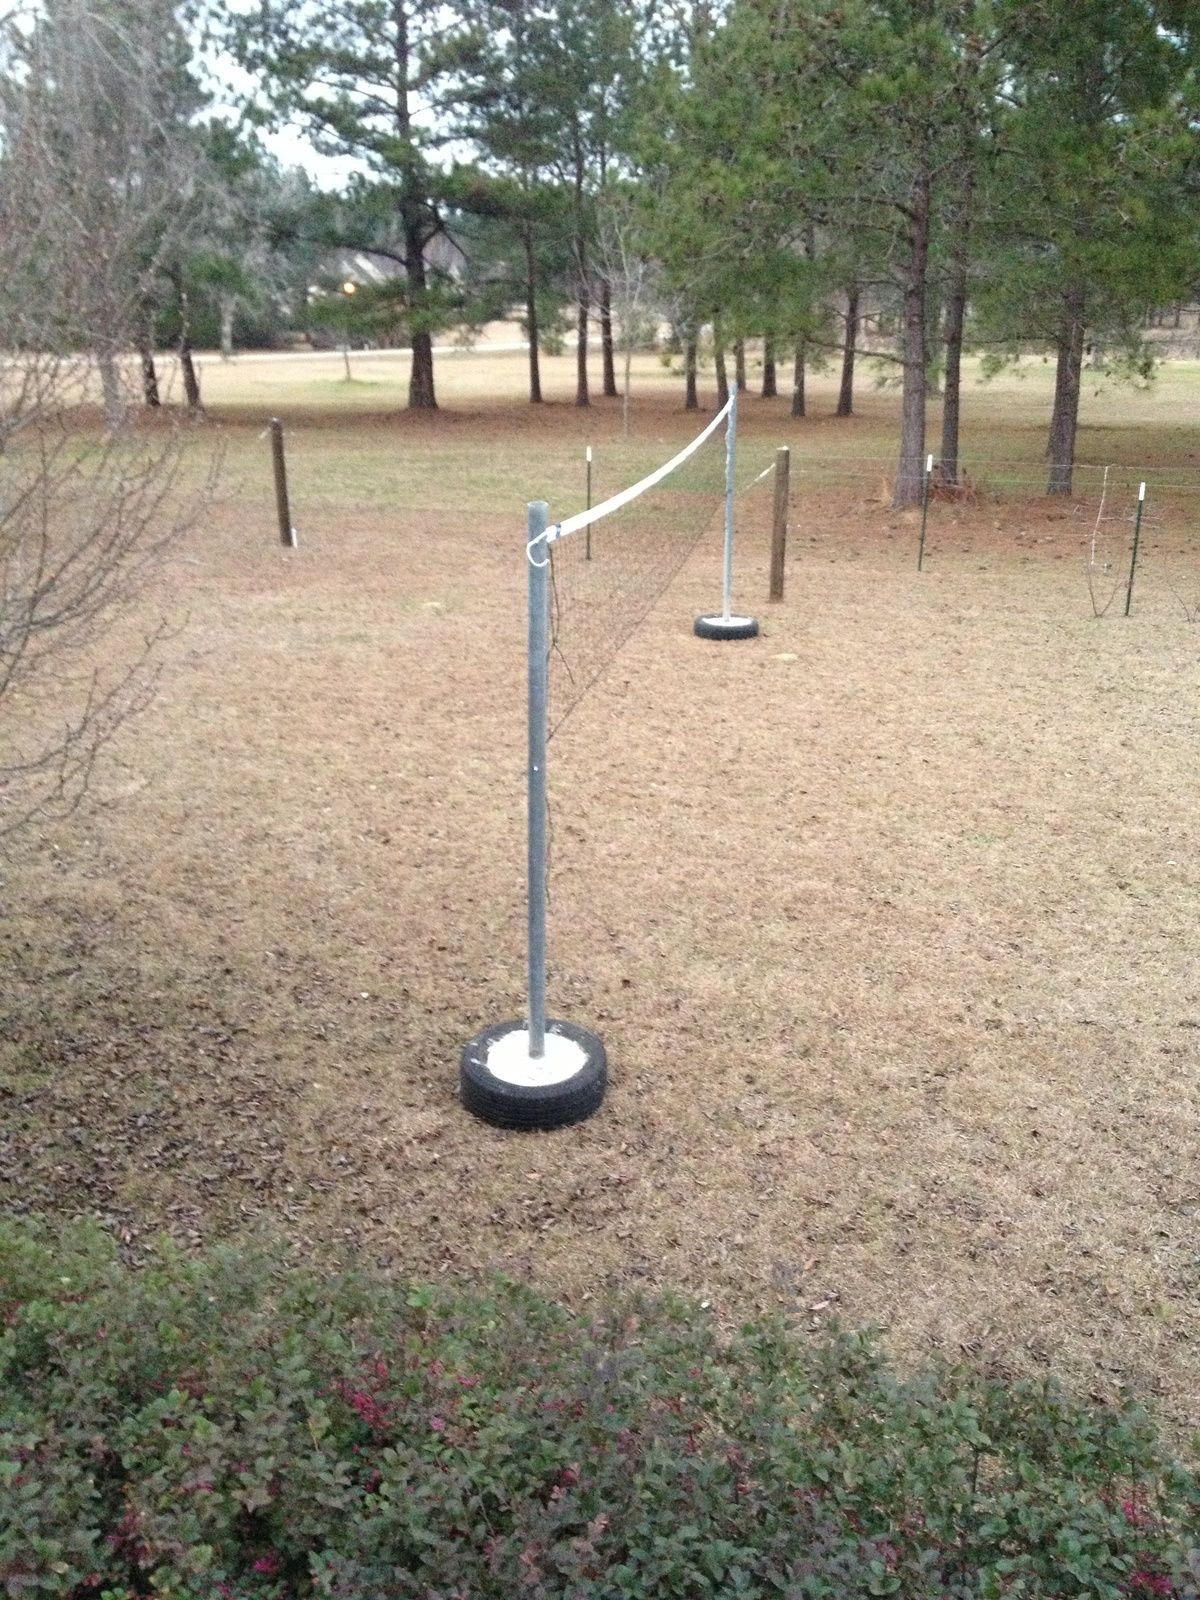 How To Make Volleyball Poles Backyard Basketball Basketball Court Backyard Backyard Playground